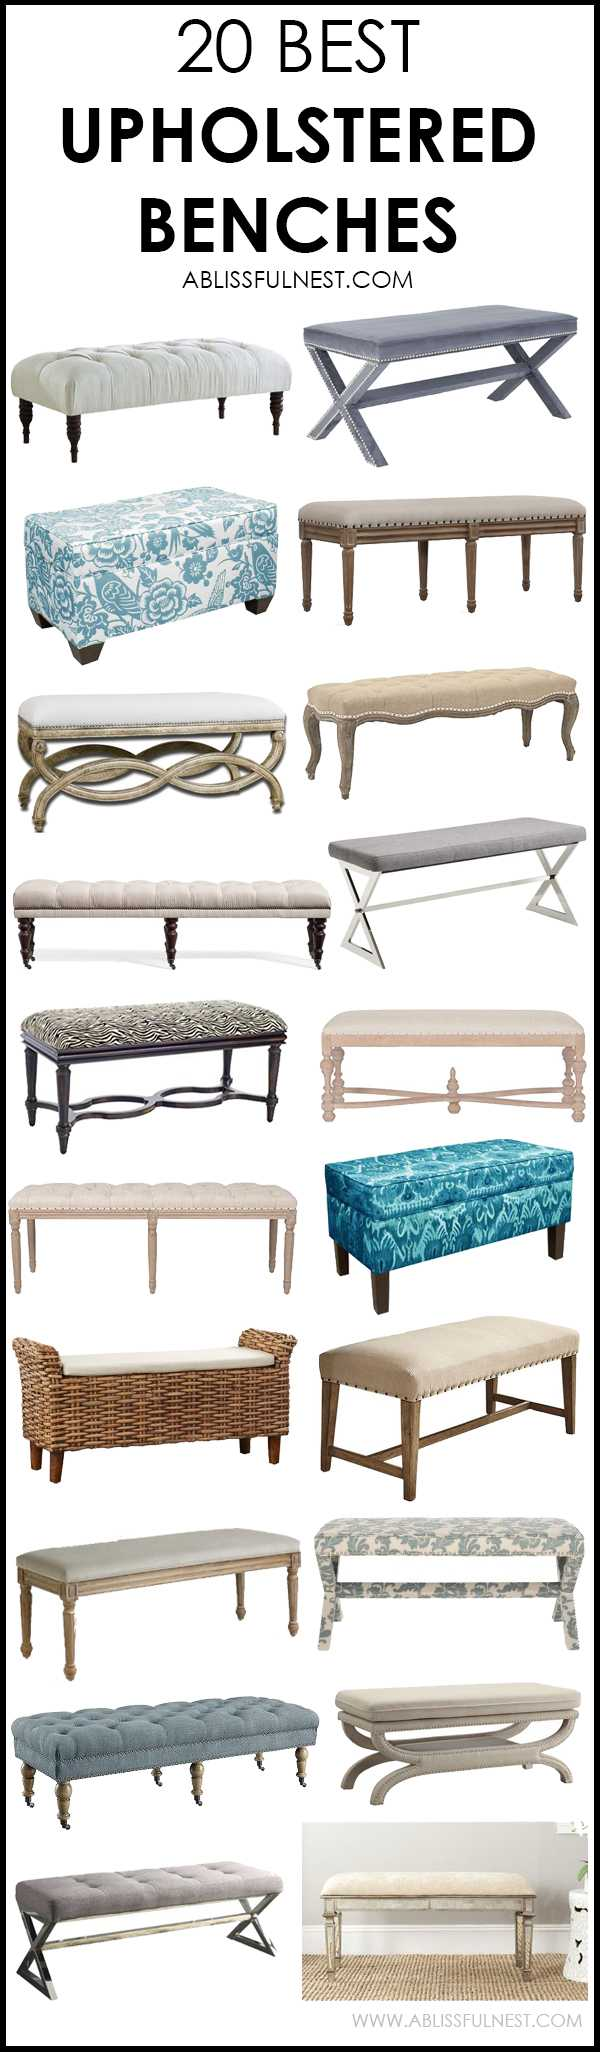 20 Best Upholstered Benches Friday Favorite Finds